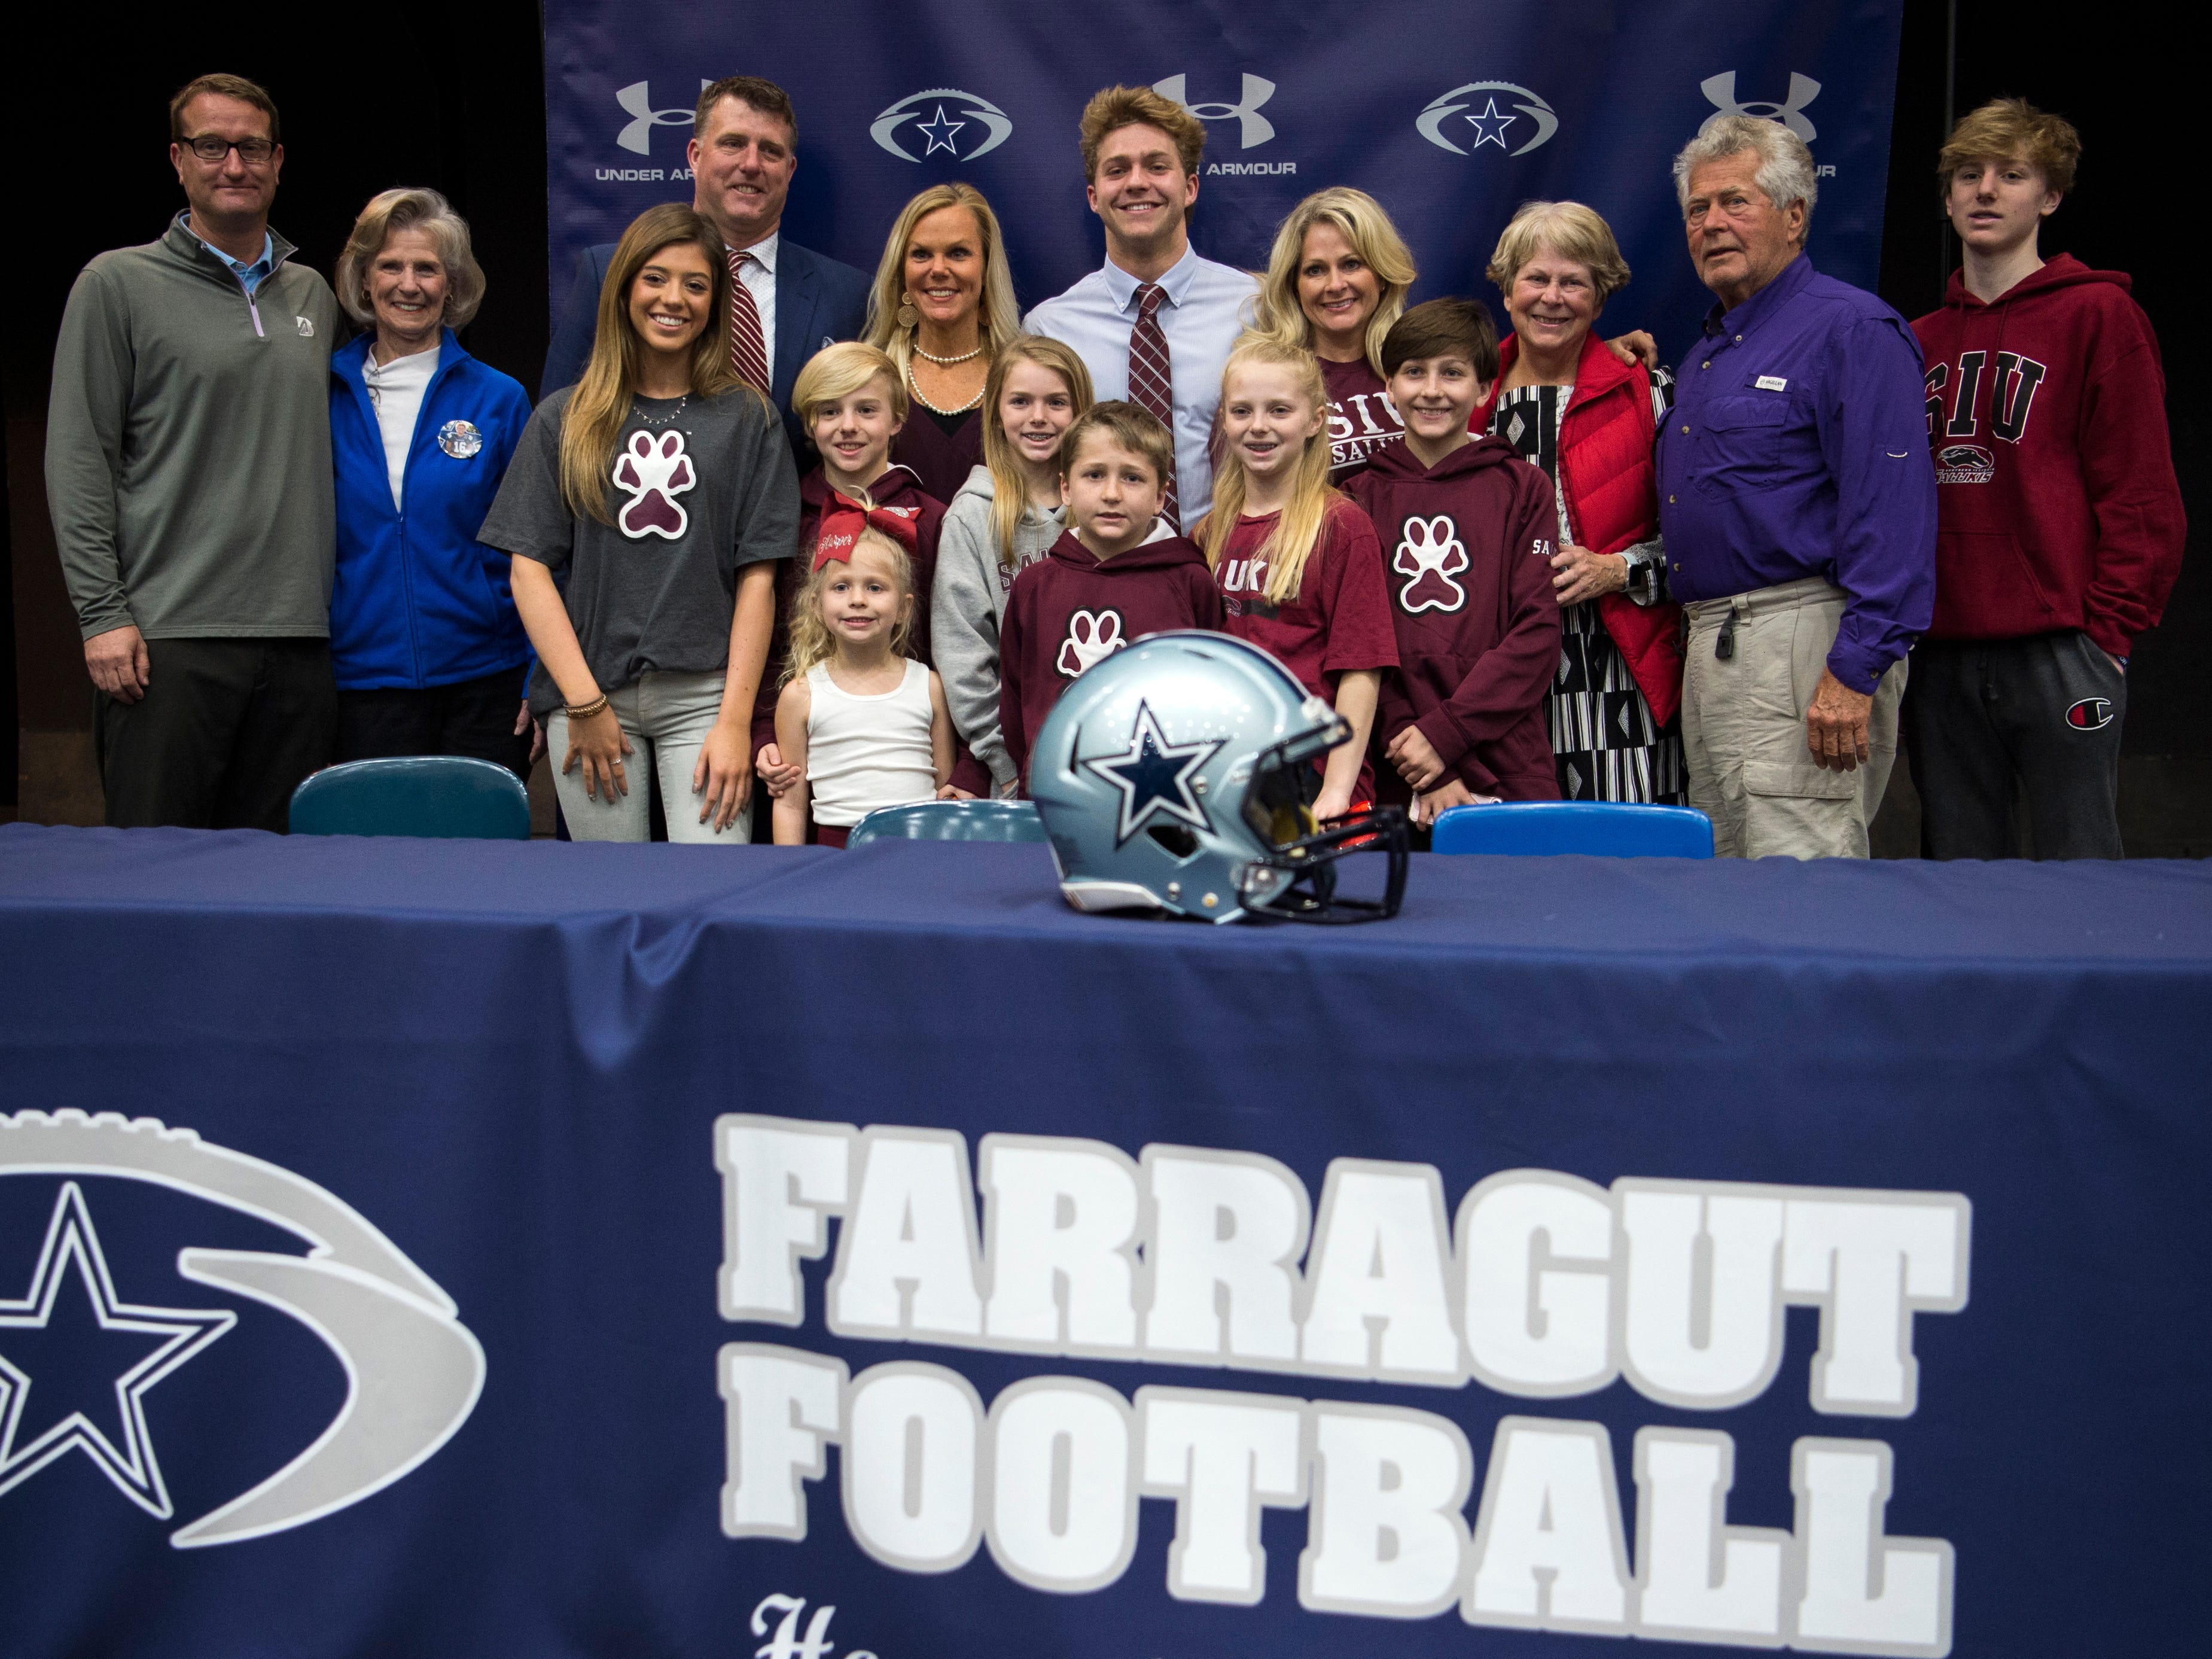 Farragut football player Tanner Corum during a National Signing Day event at Farragut High's auditorium on Wednesday, February 6, 2019.